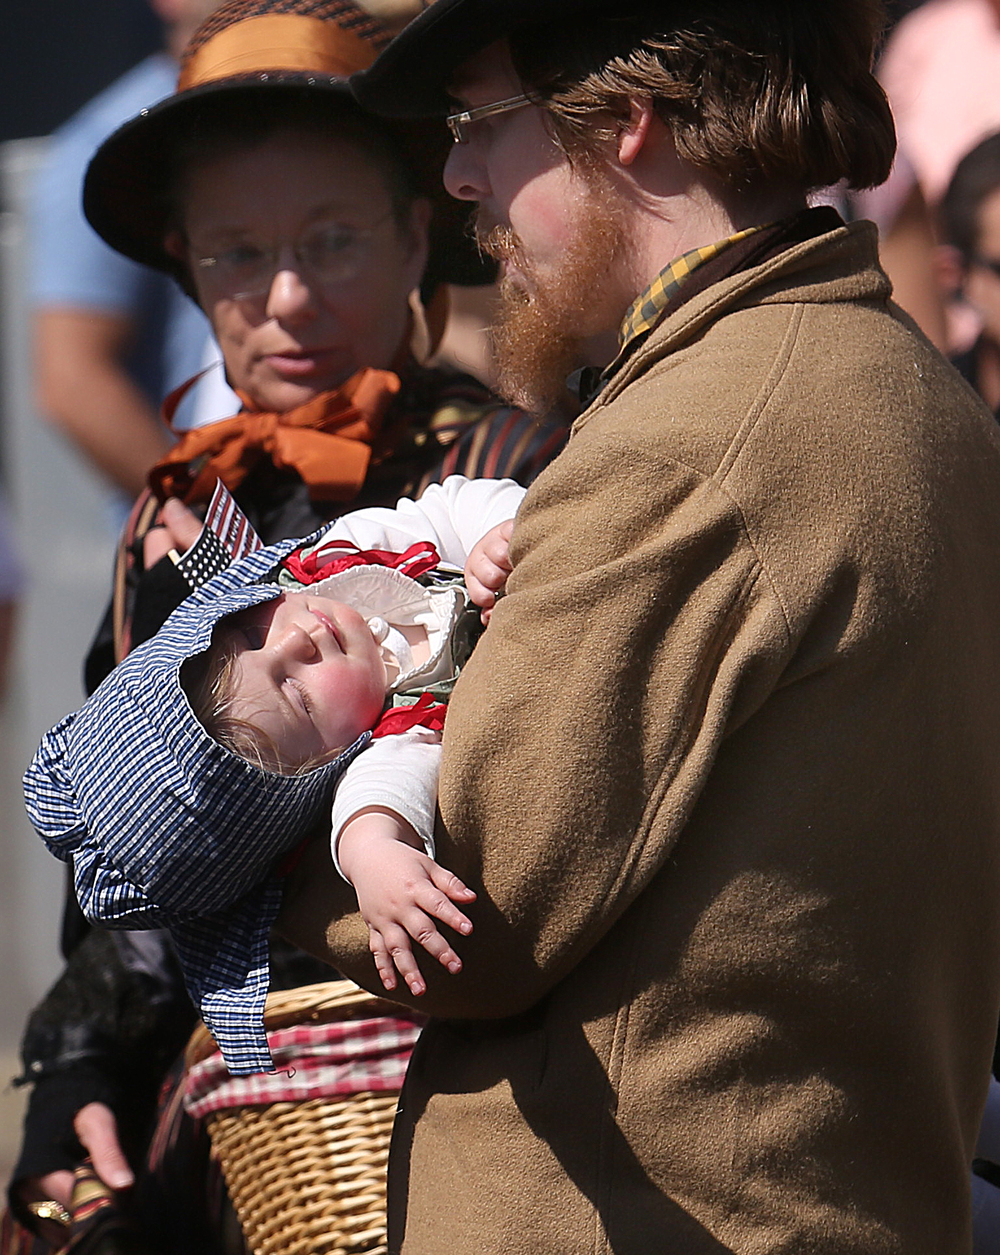 One participant in the funeral procession, a young child, appeared to be taking a nap while being carried down Fifth Street. David Spencer/The State Journal-Register